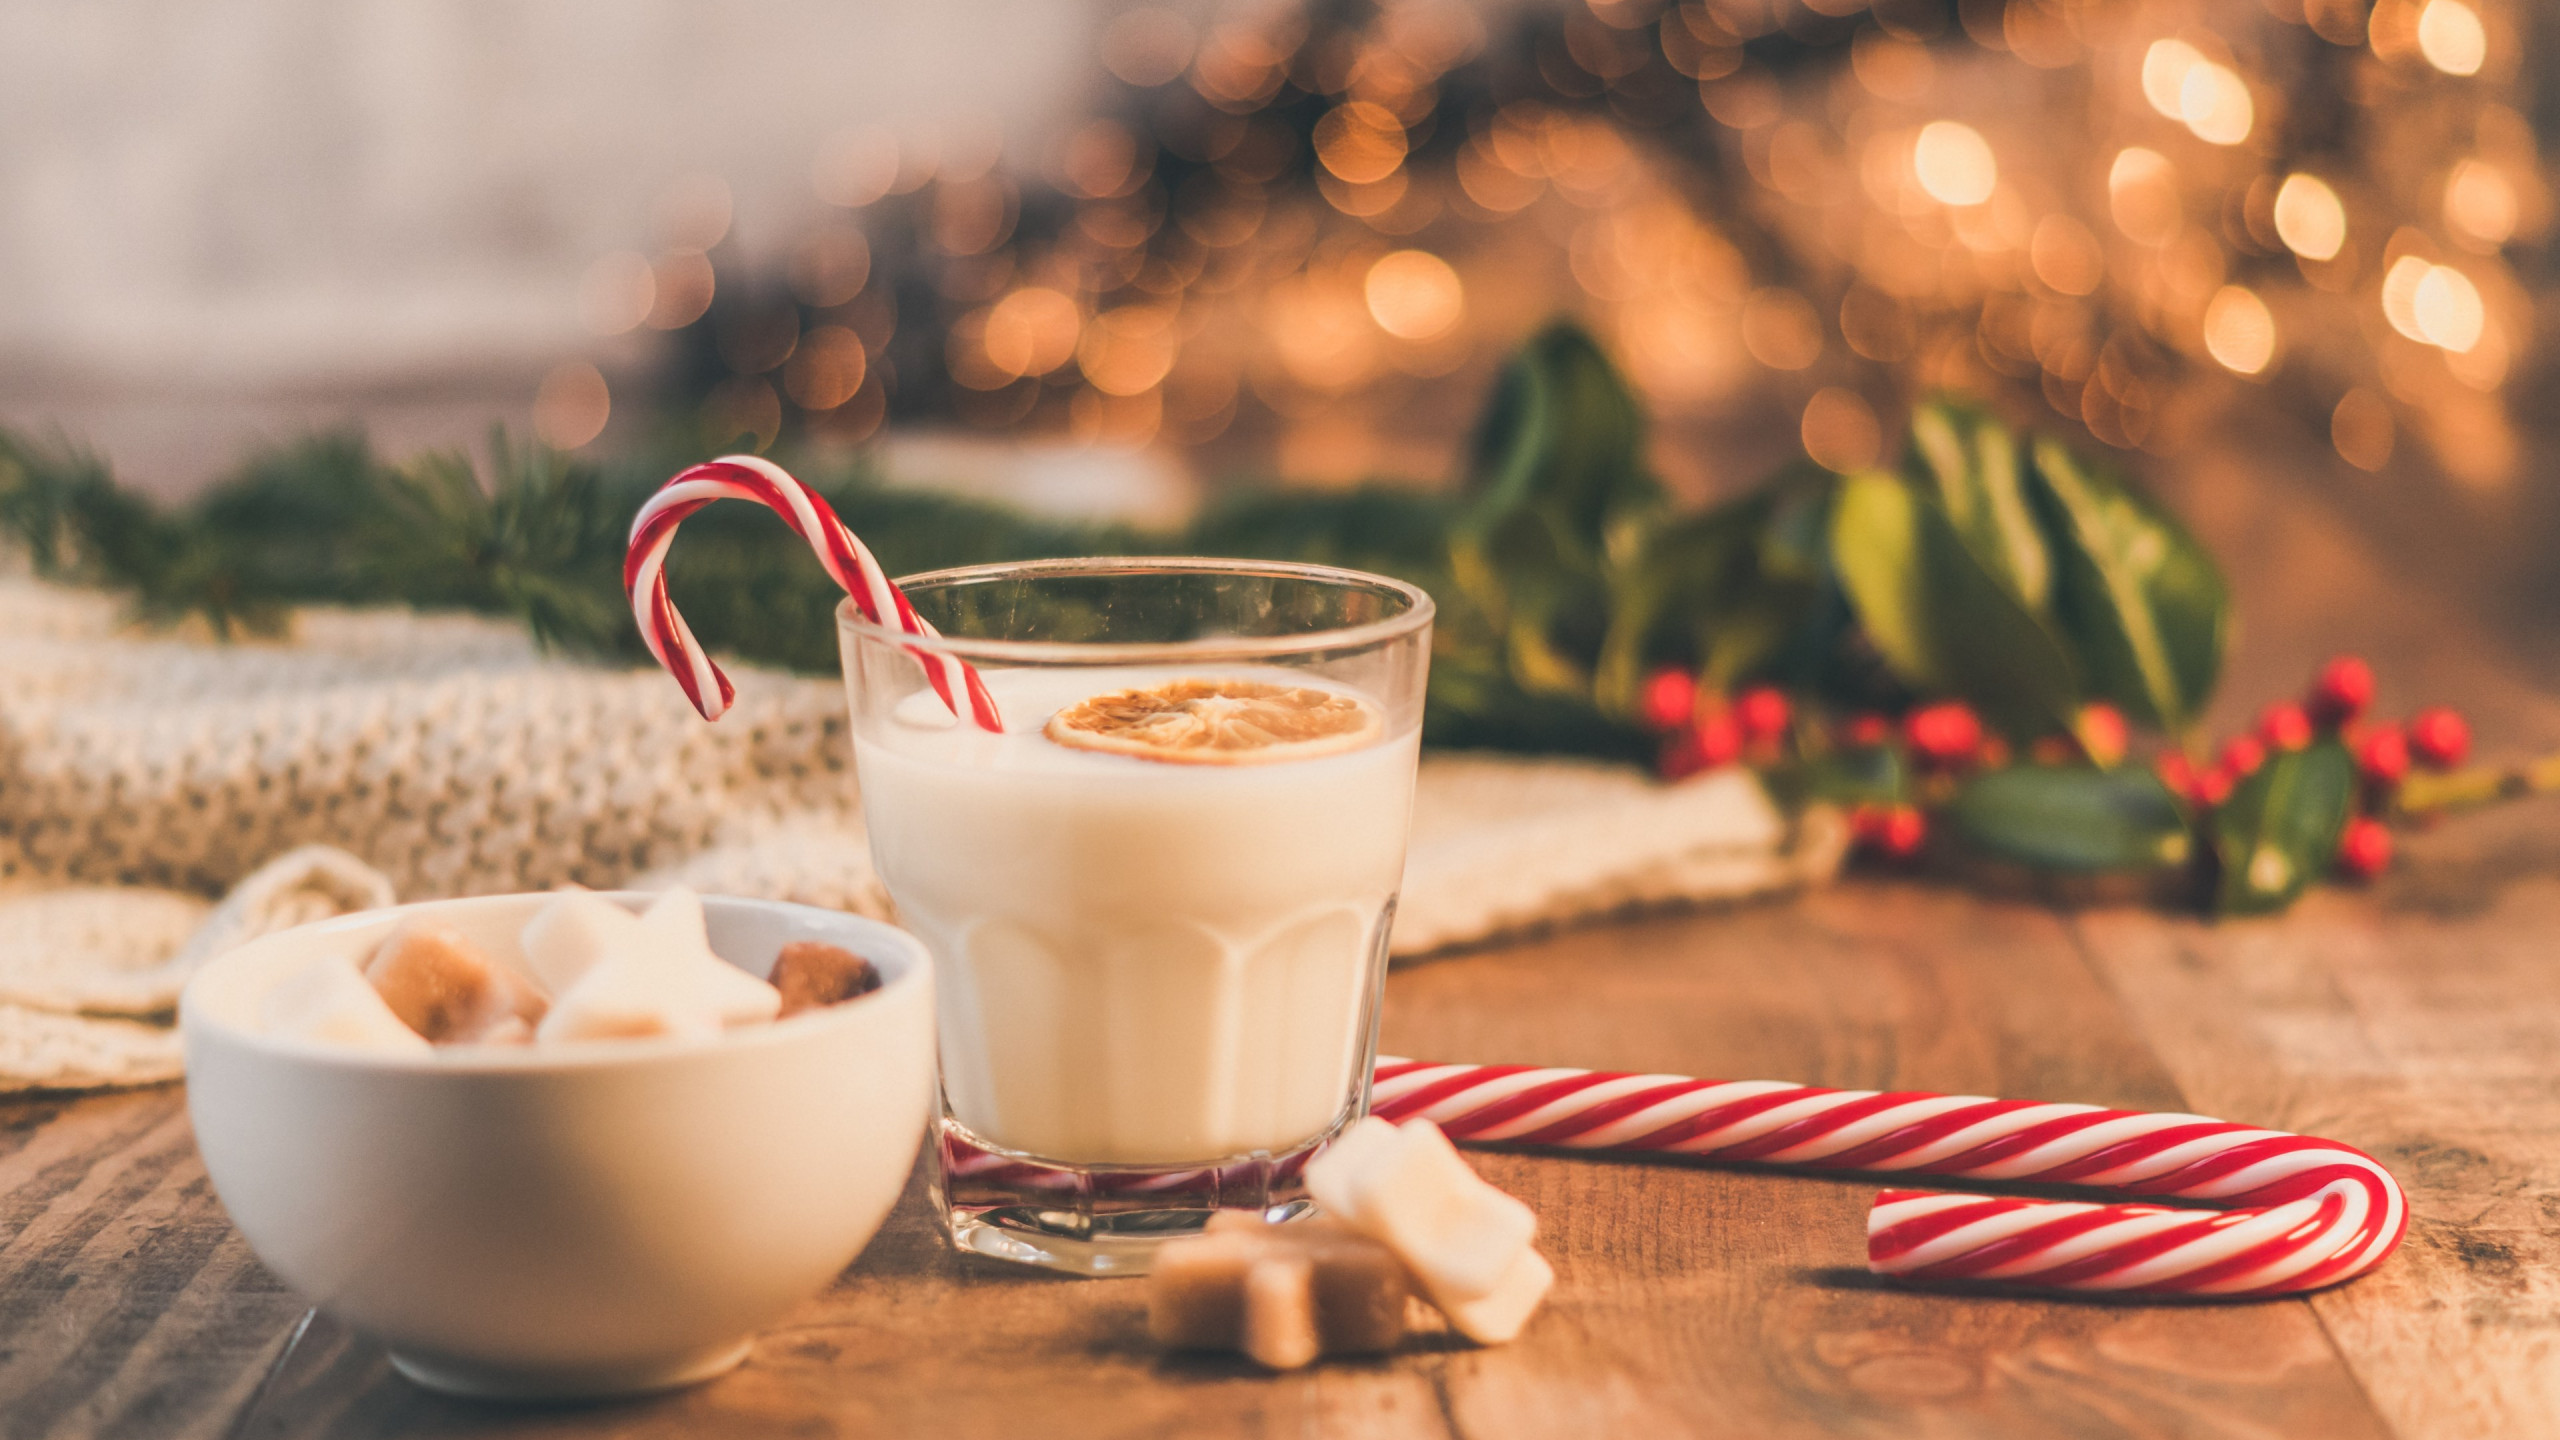 Seasonal Christmas sweets and cup of milk wallpaper 2560x1440